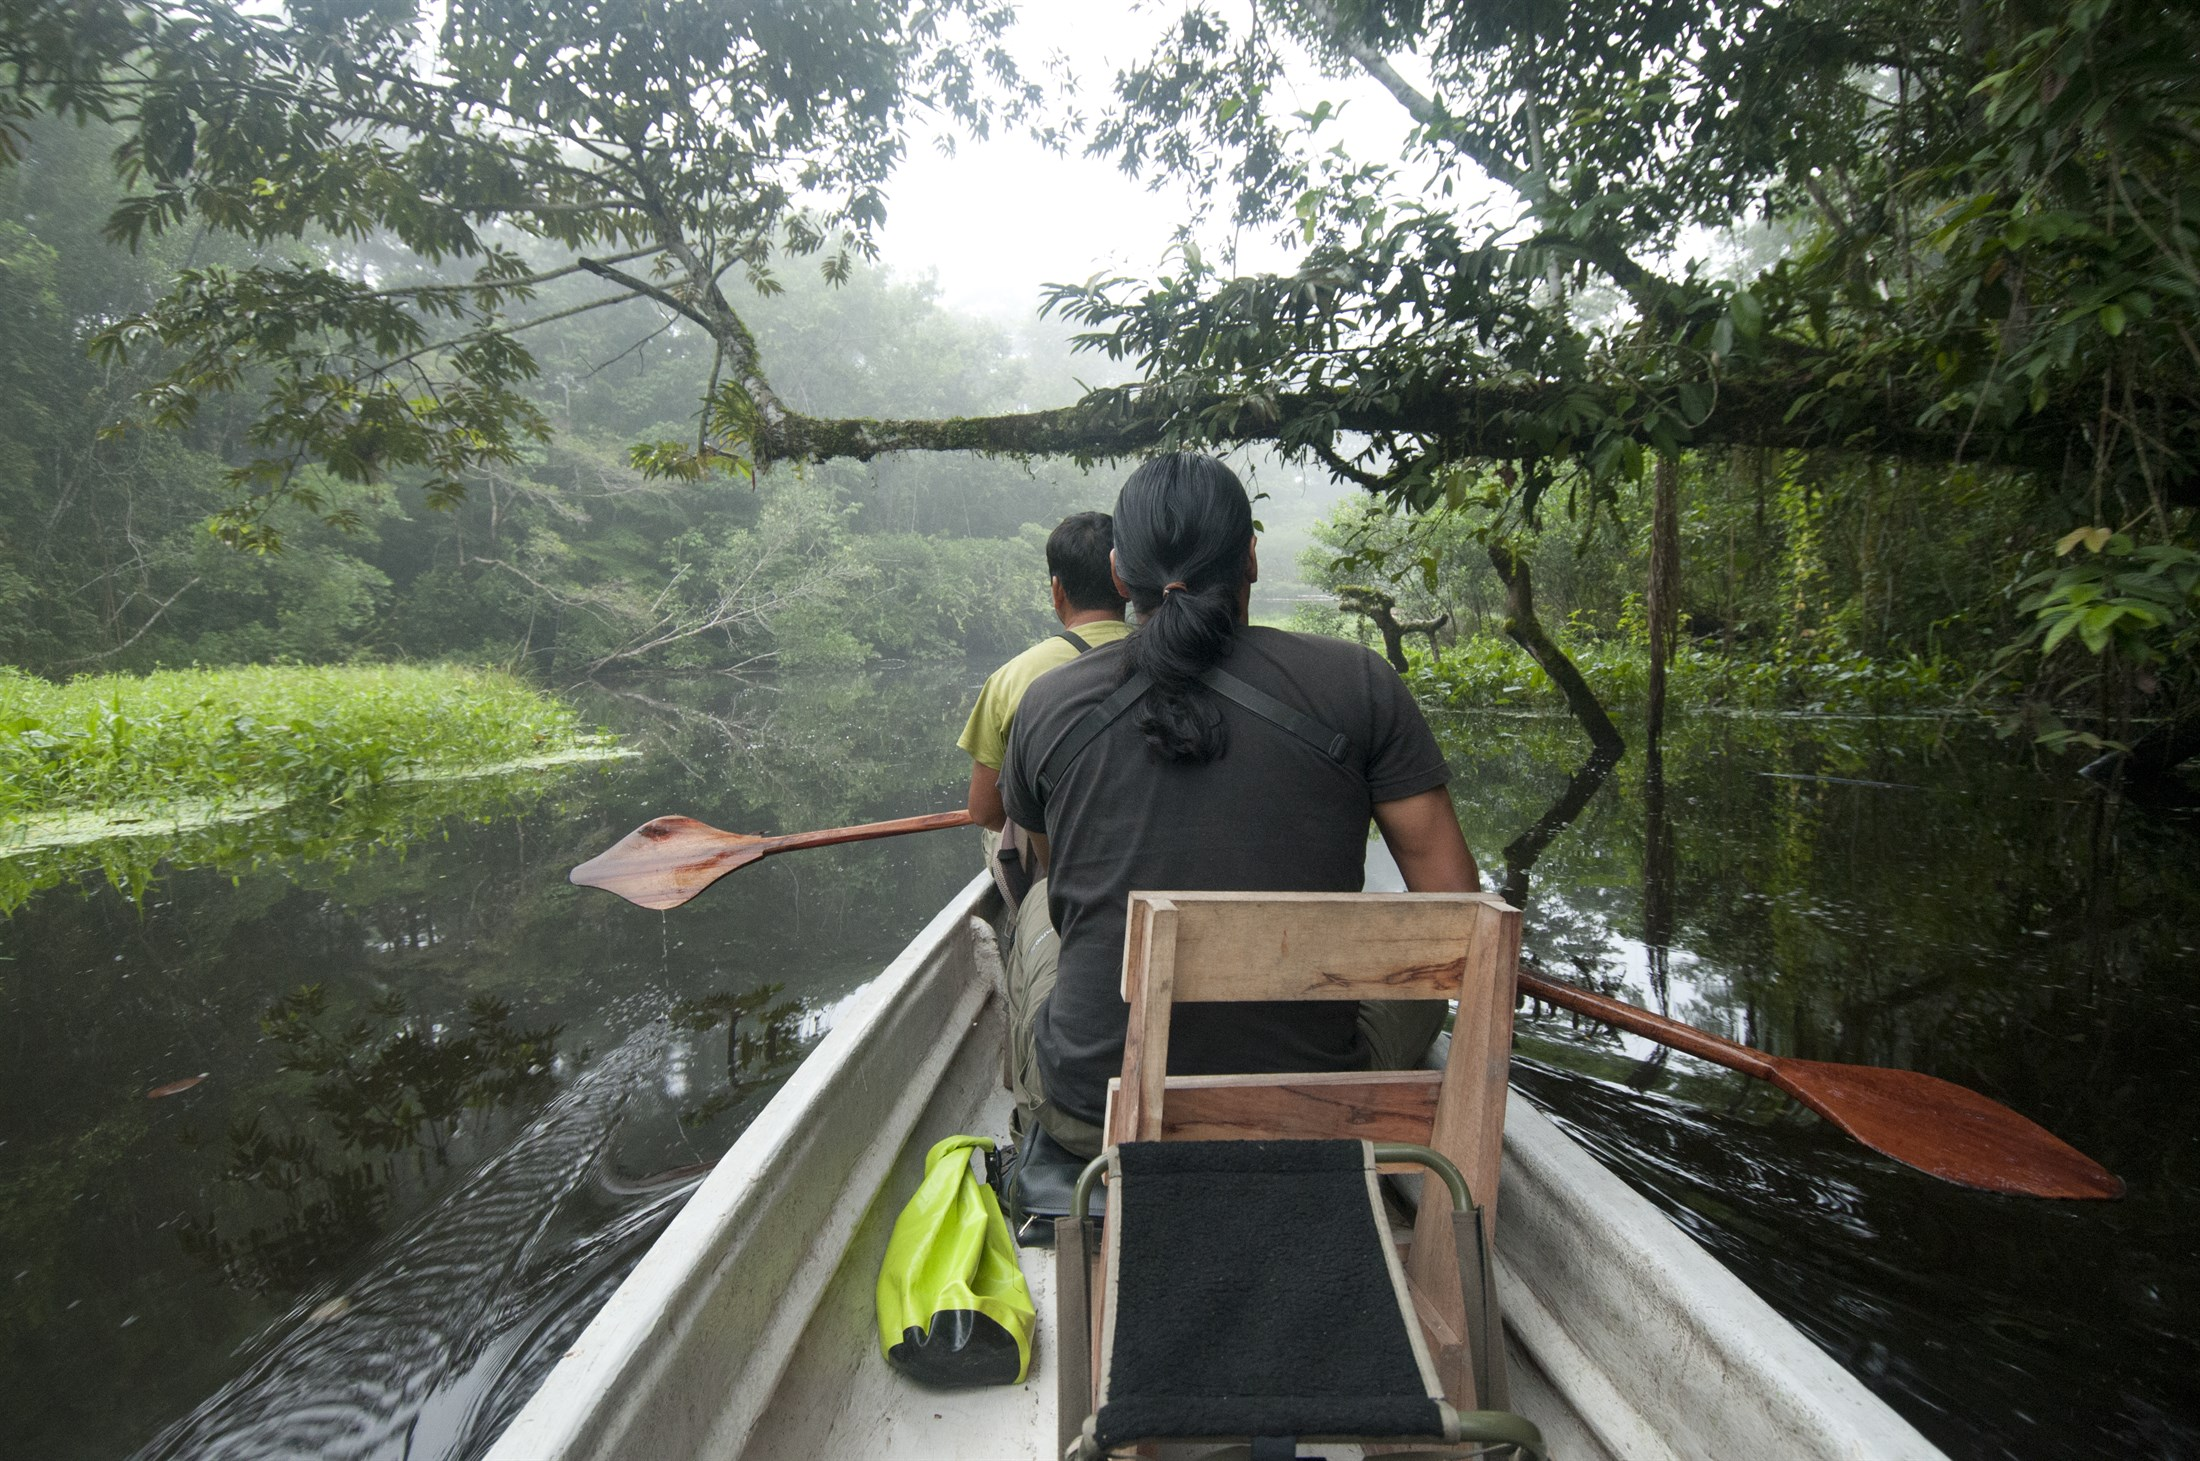 Guided by Indigenous People through the Yasuni National Park. Photo: Peter Prokosch